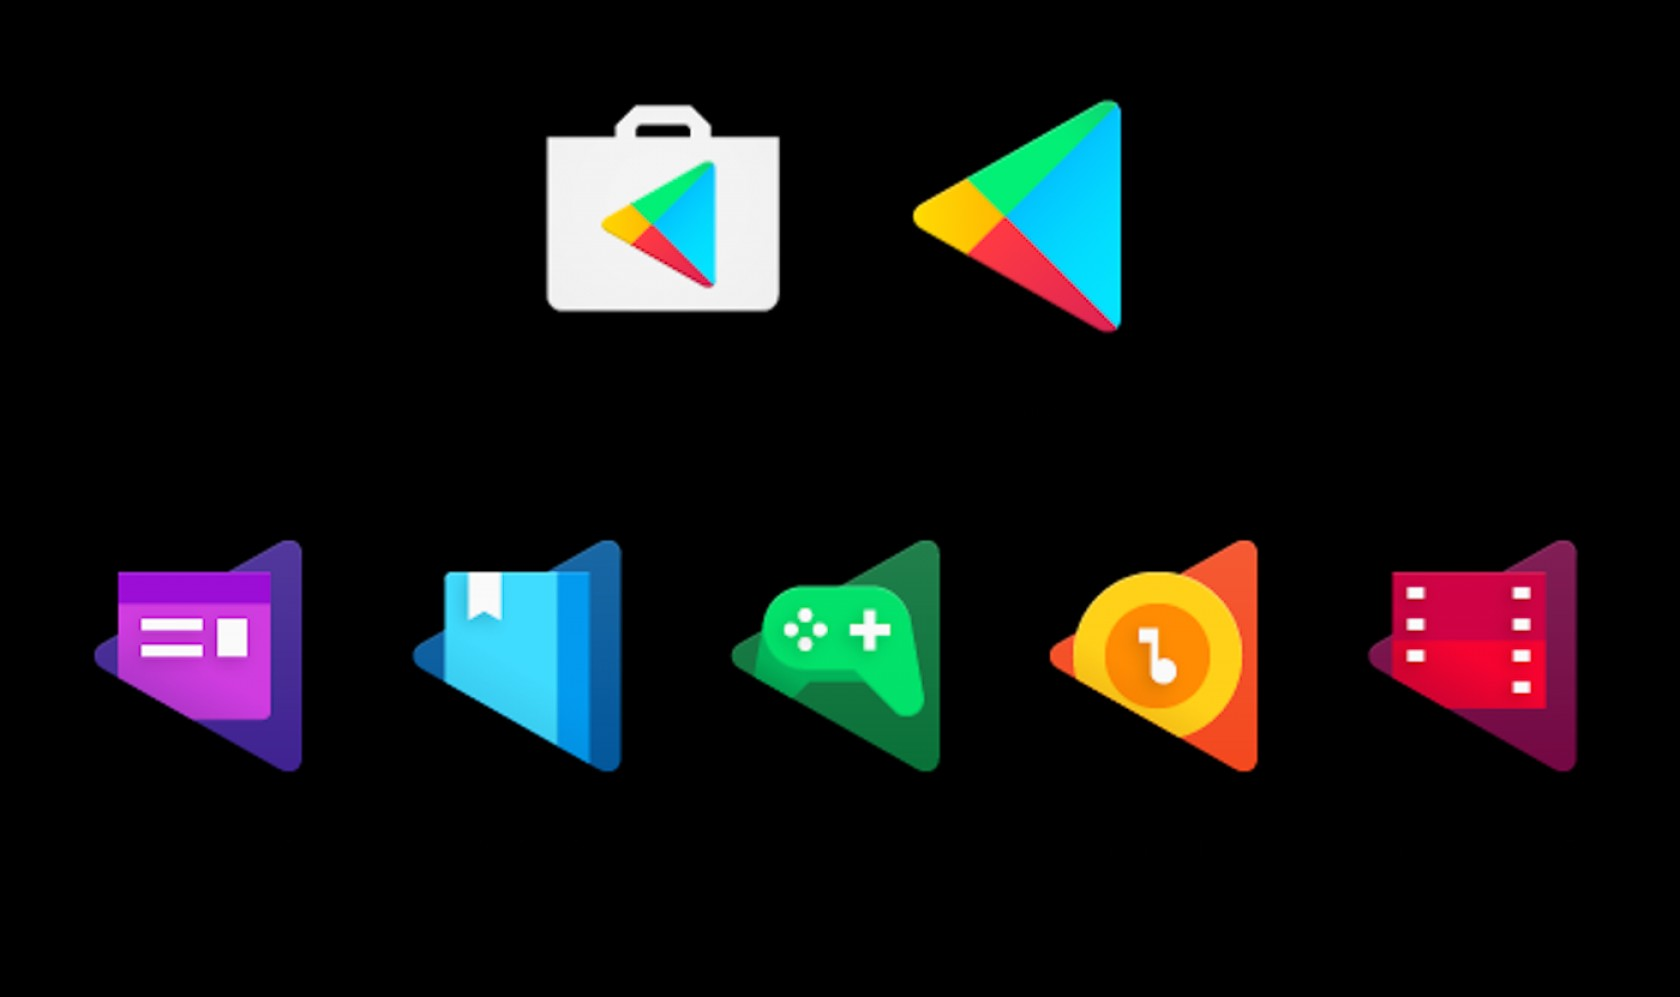 Play Store Icon Vector: Google Makes Tiny Change To Play Store App Logo